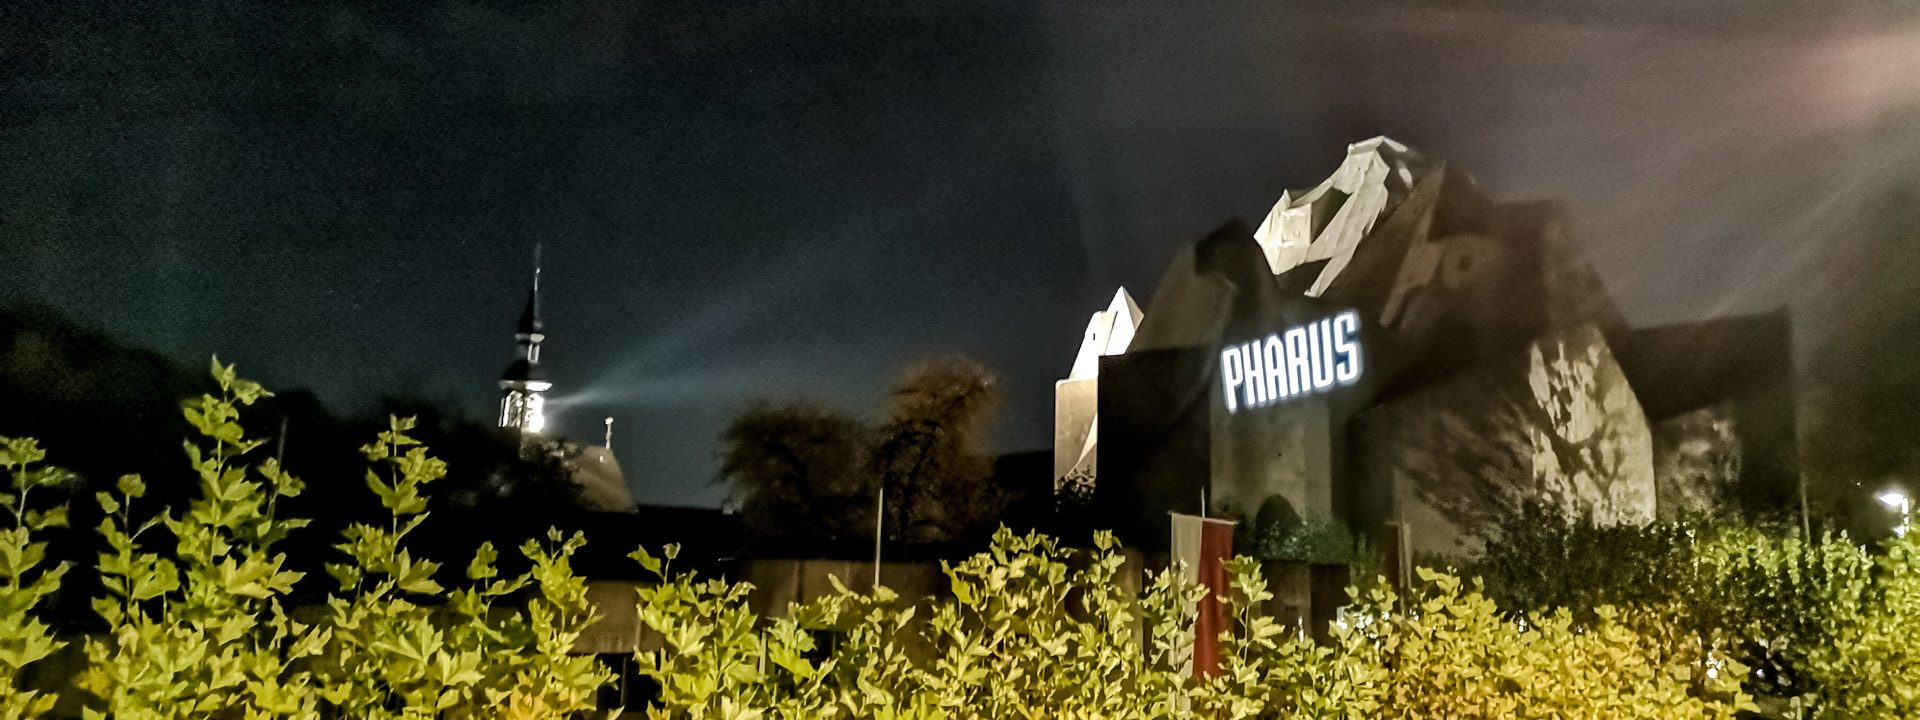 PHARUS lettering projected onto the Mariendom Neviges at night